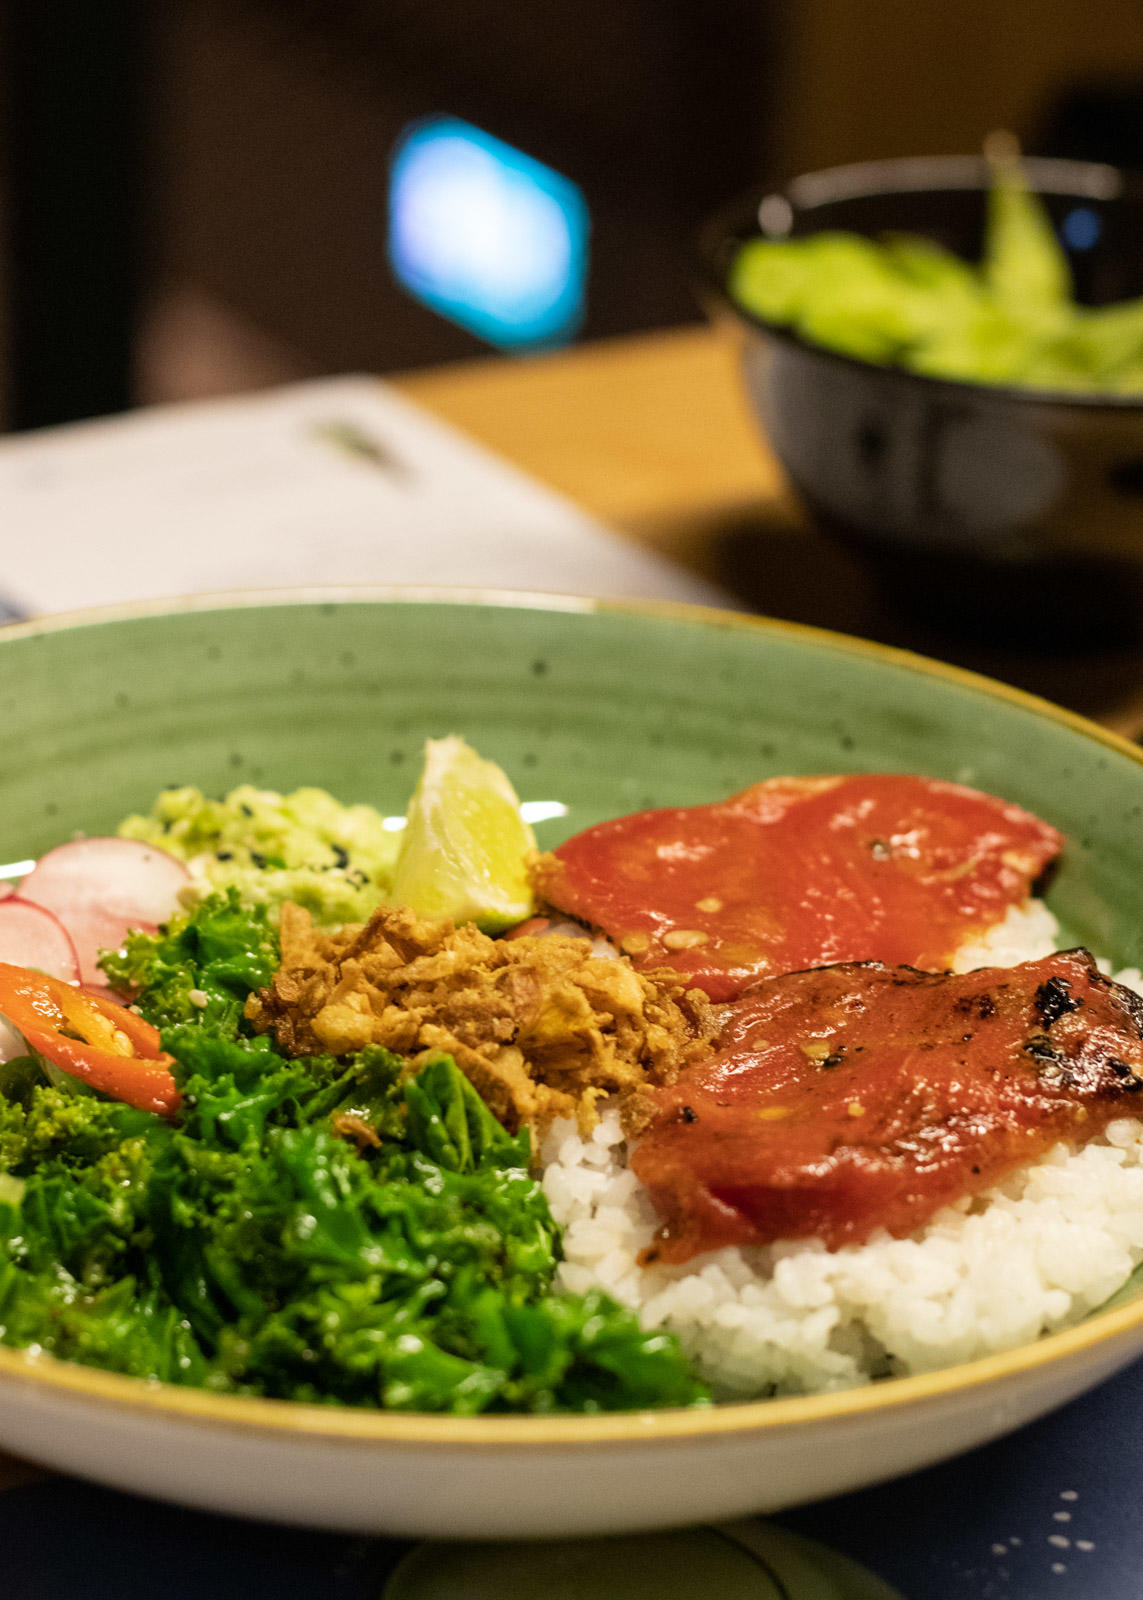 Vegan 'Suika' Tuna | Wagamama Vegan Menu Review